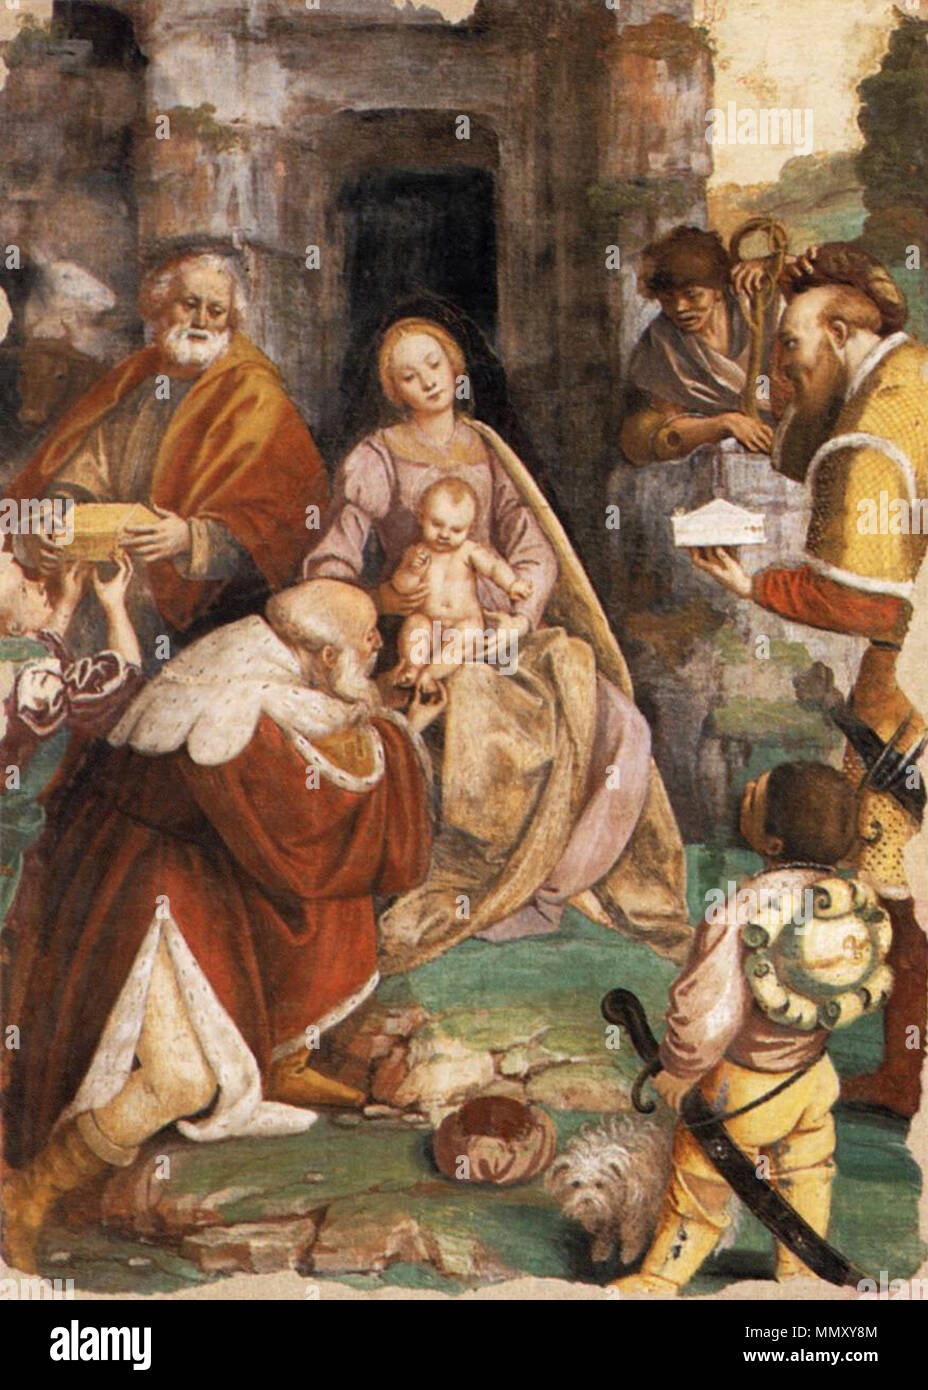 The Adoration of the Magi. between 1544 and 1545. Gaudenzio Ferrari - The  Adoration of the Magi - WGA07818